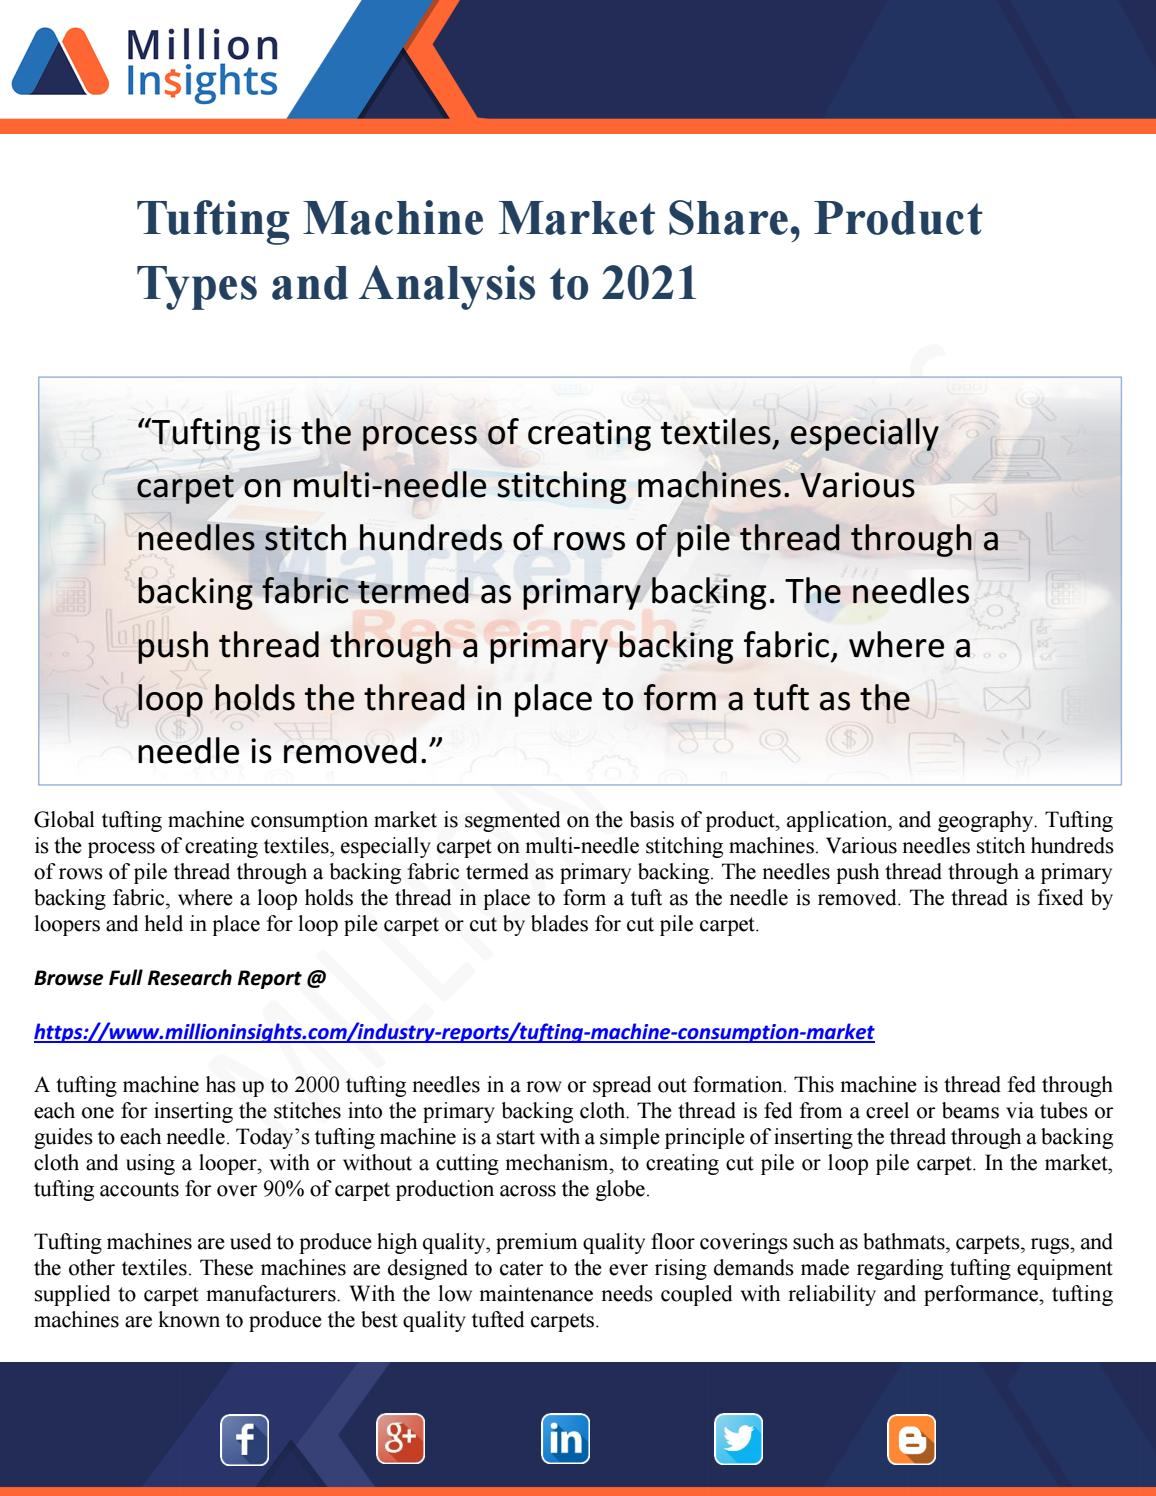 Tufting machine market share, product types and analysis to